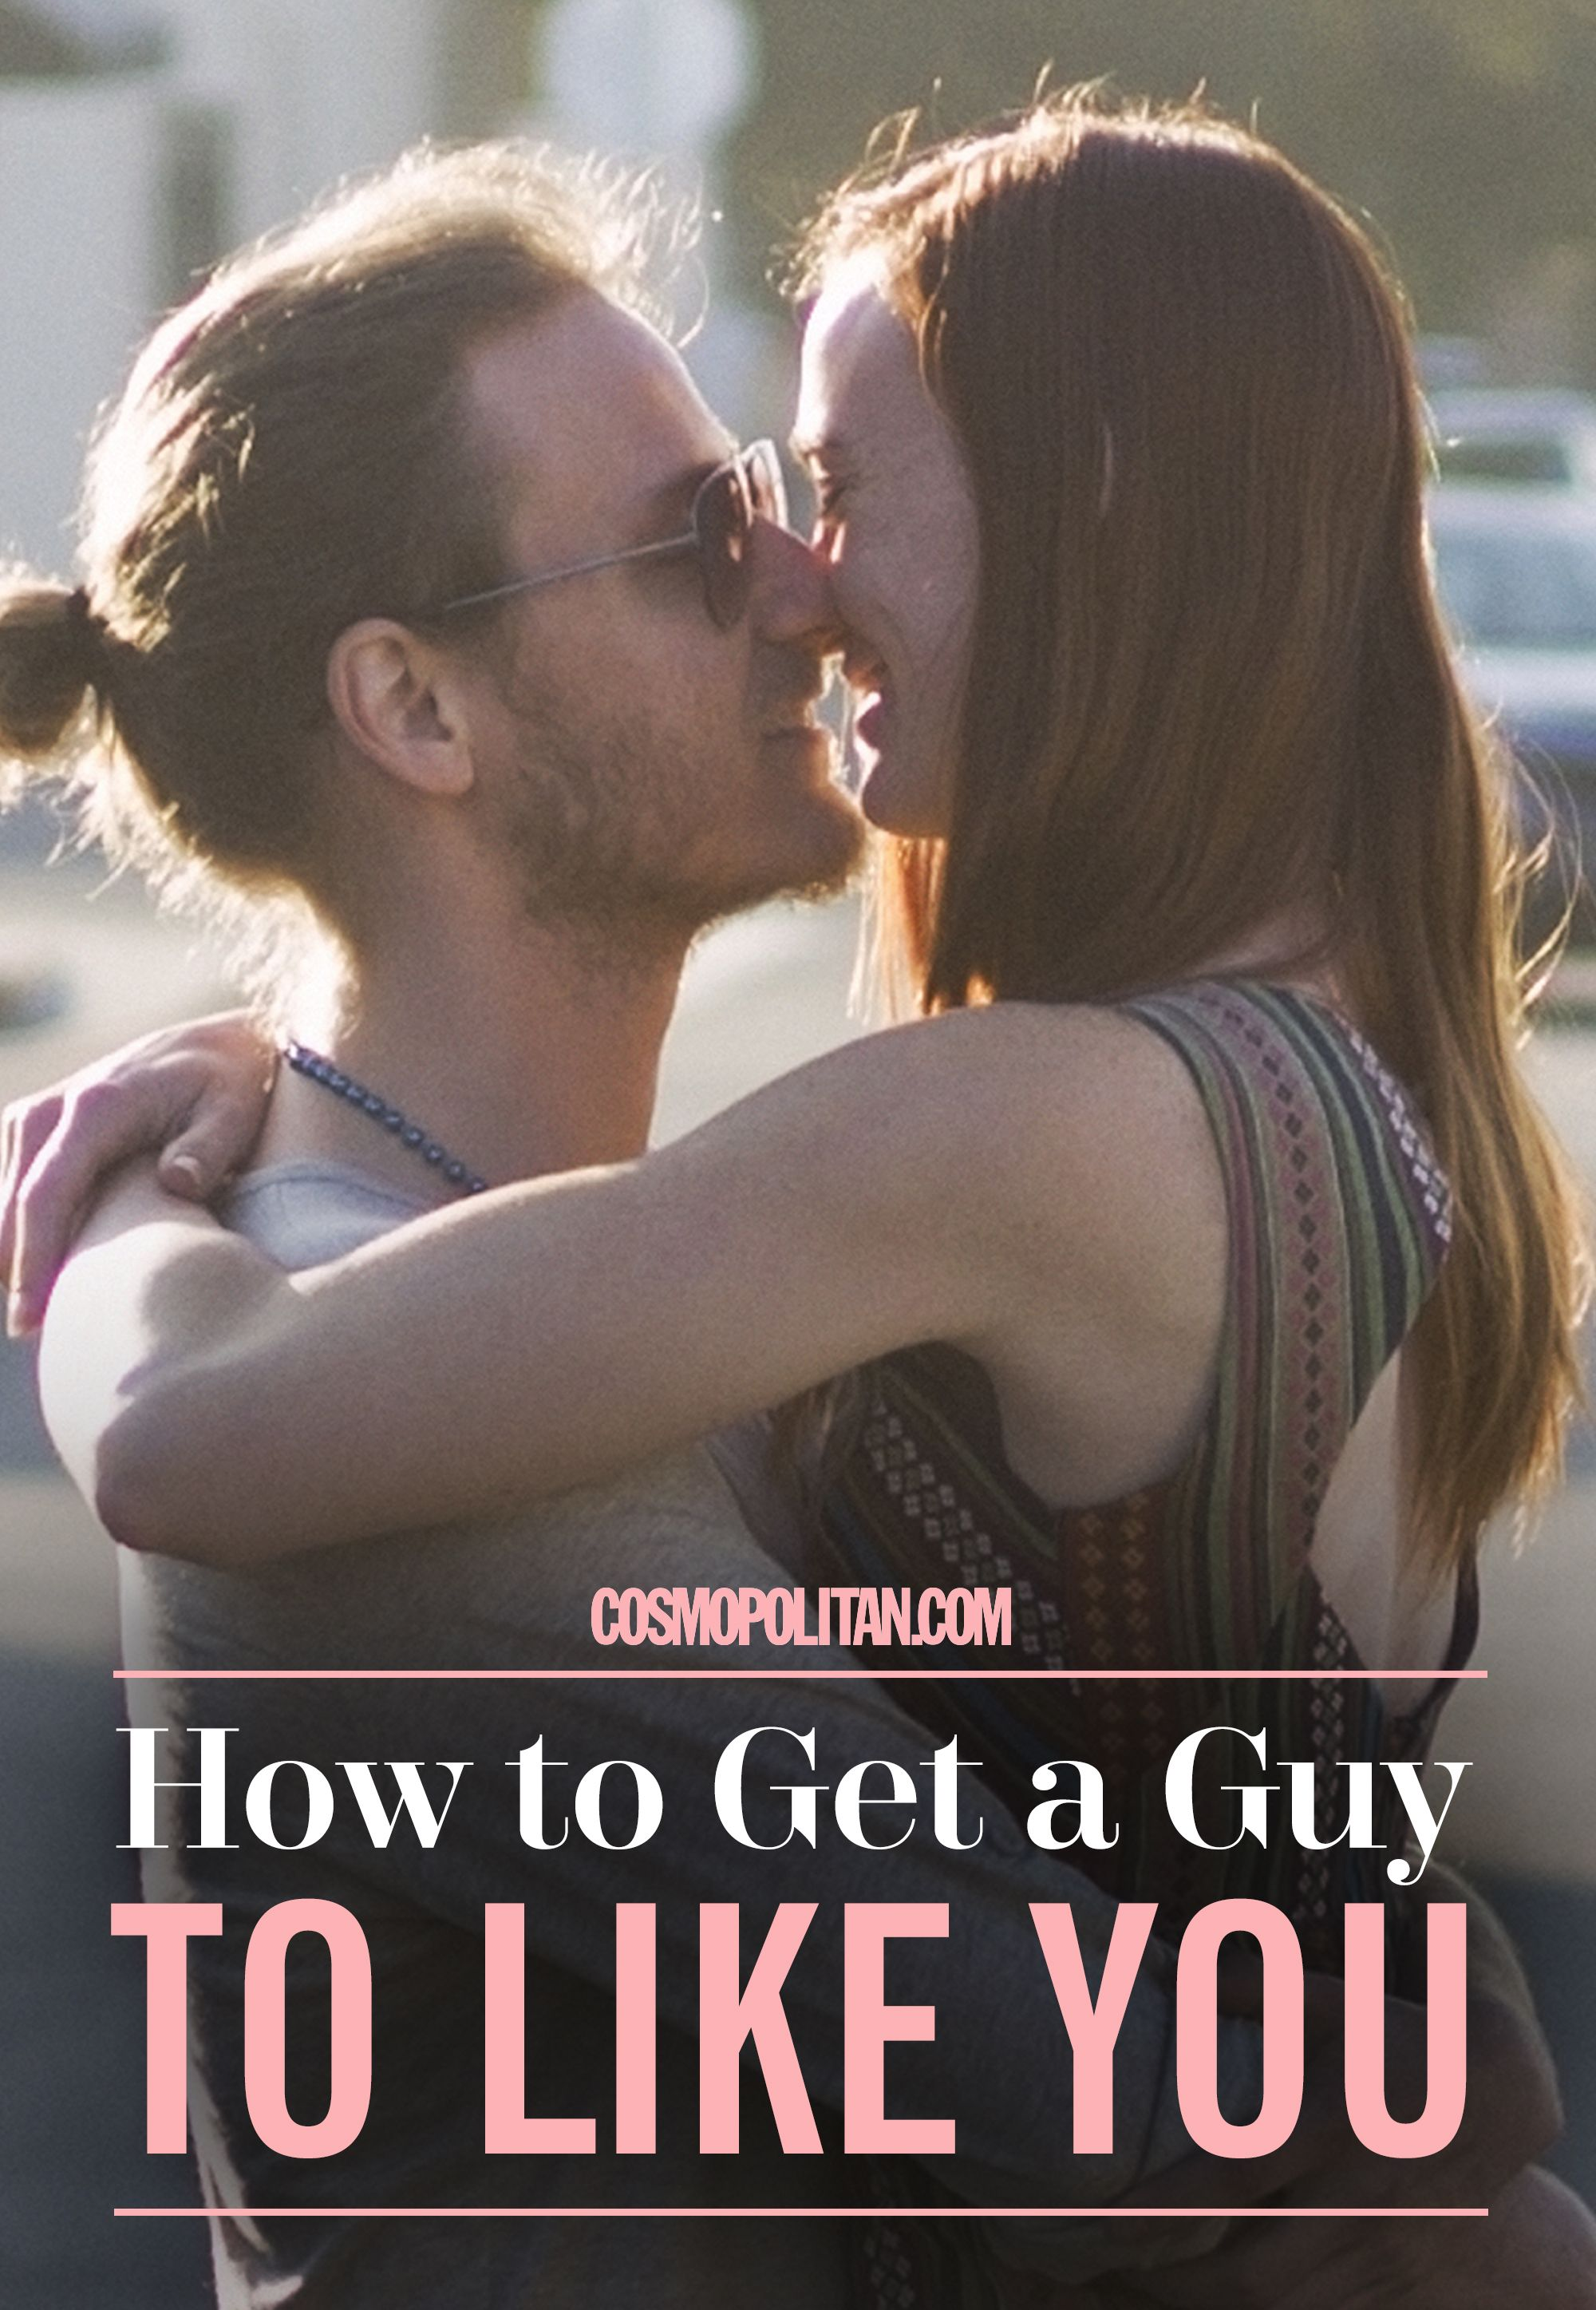 Making out tips for guys